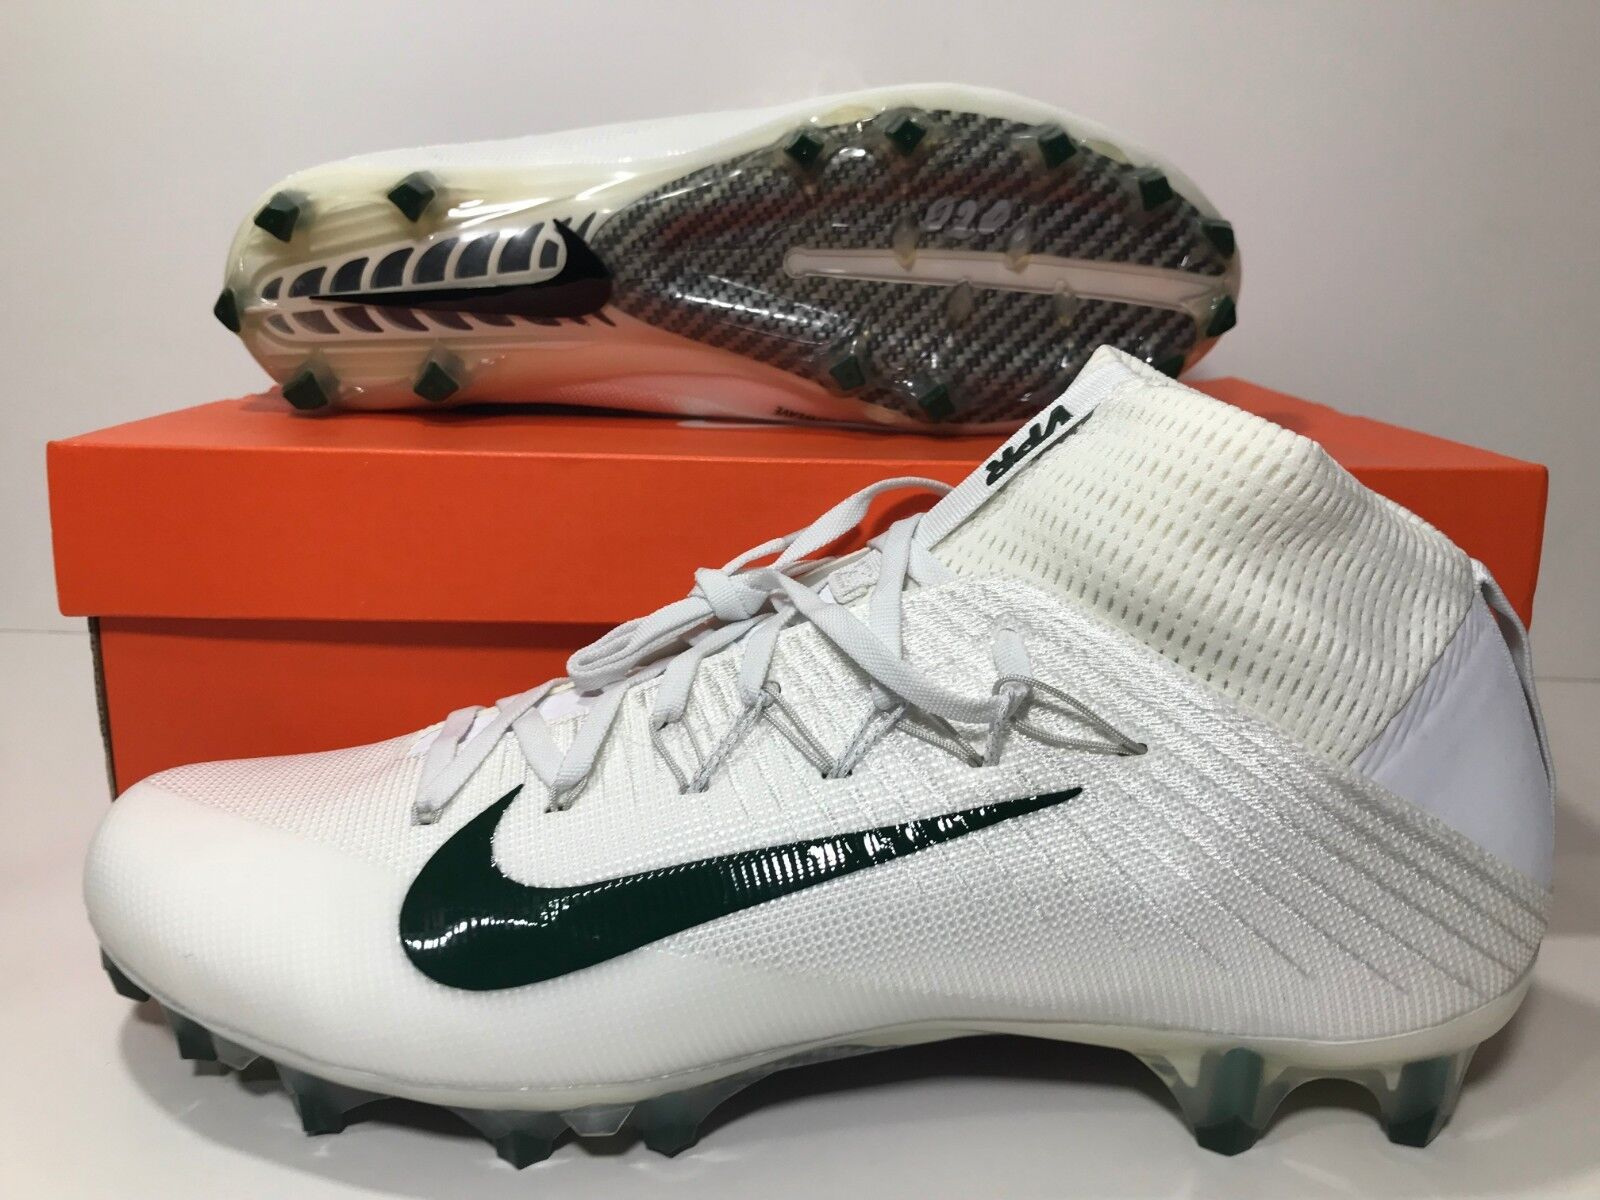 435b77e1d512 Nike Vapor Untouchable 2 Football Cleats Men's Size 12.5 White Green  924113-105